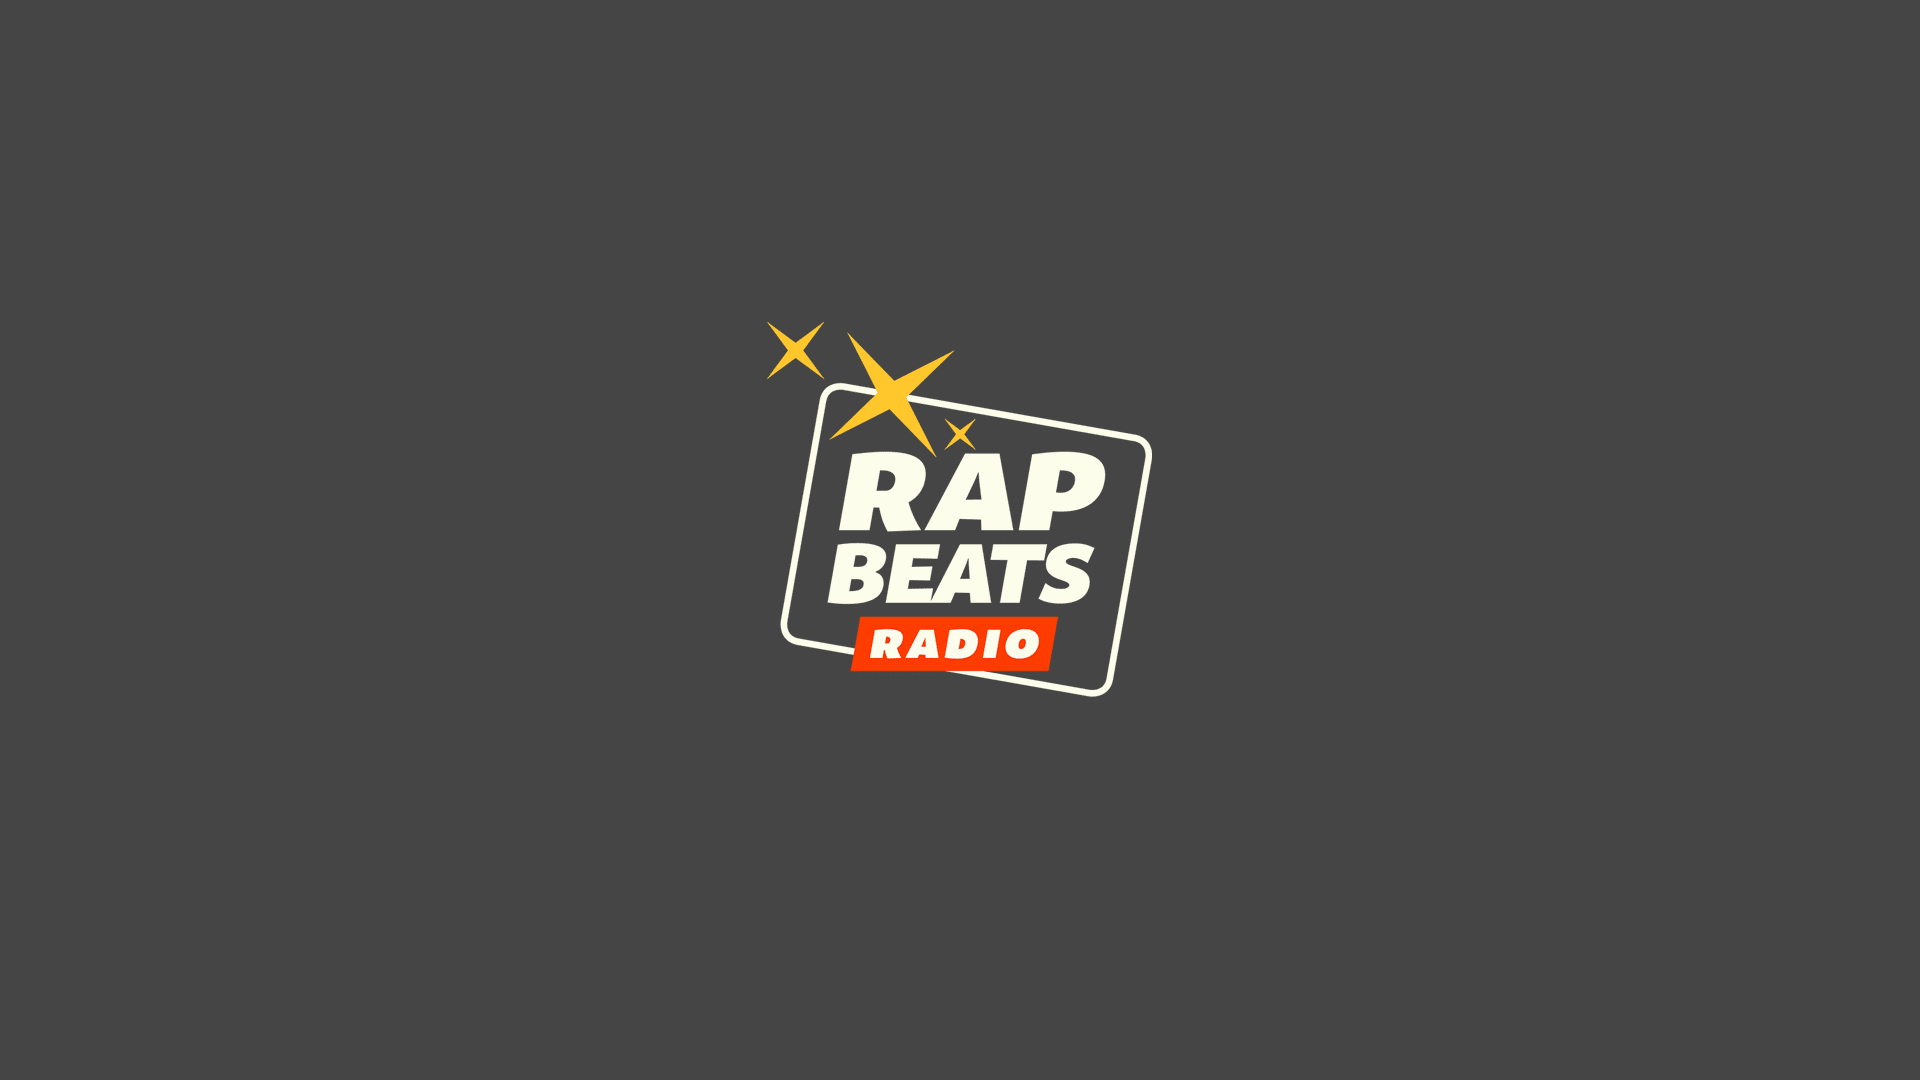 RapBeats Radio